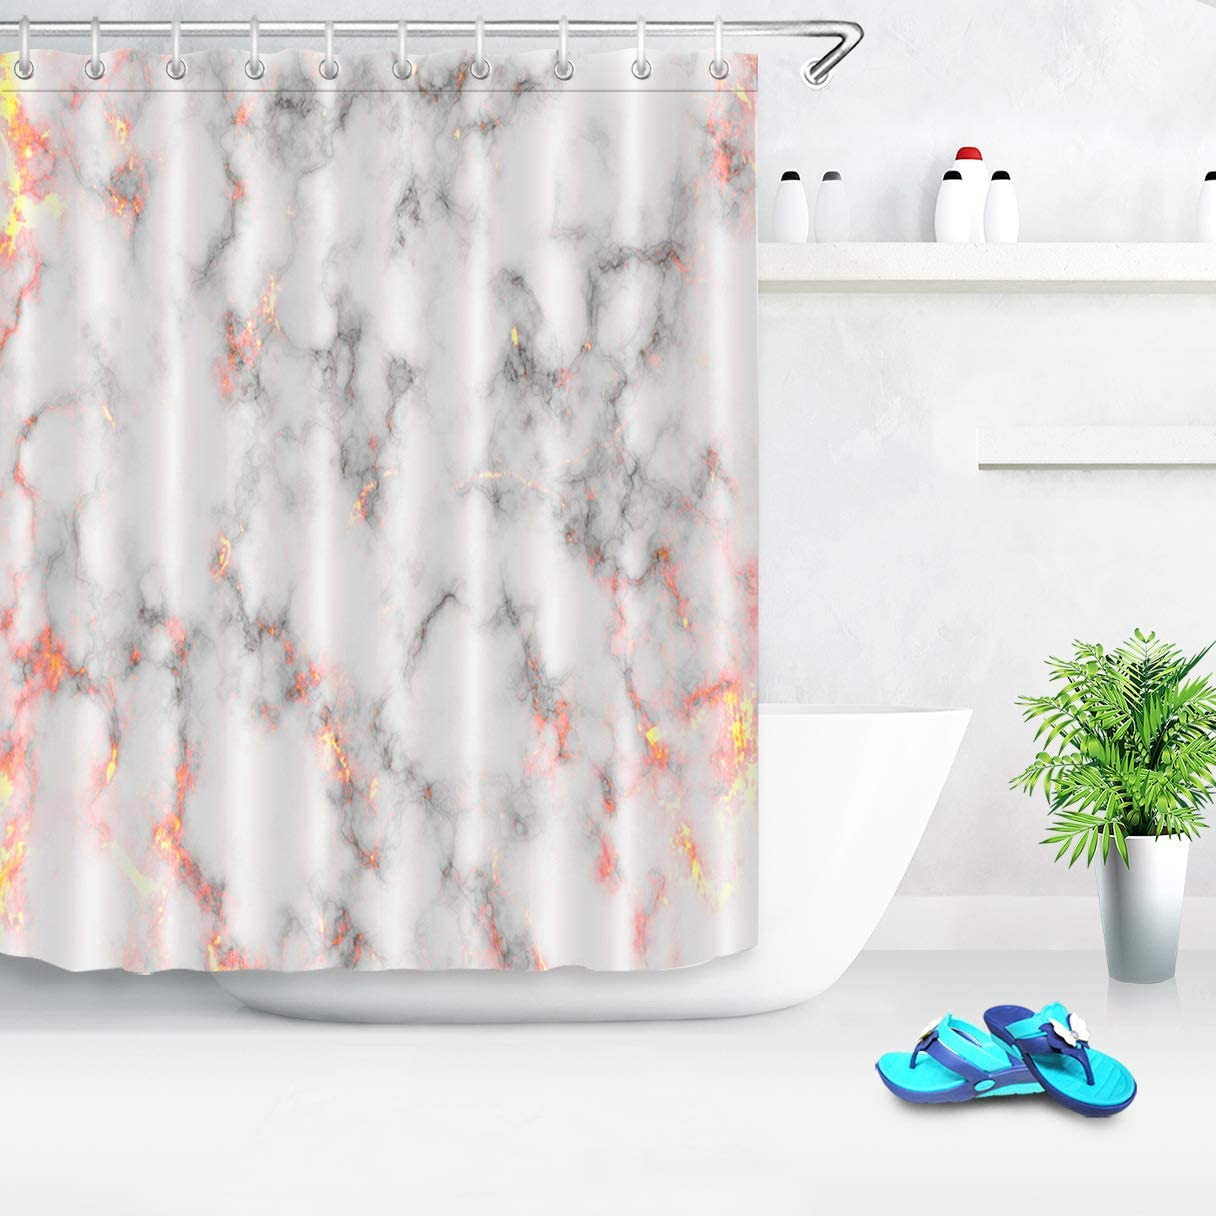 Riverbyland Shower Curtains Purple Stone 72 X 80